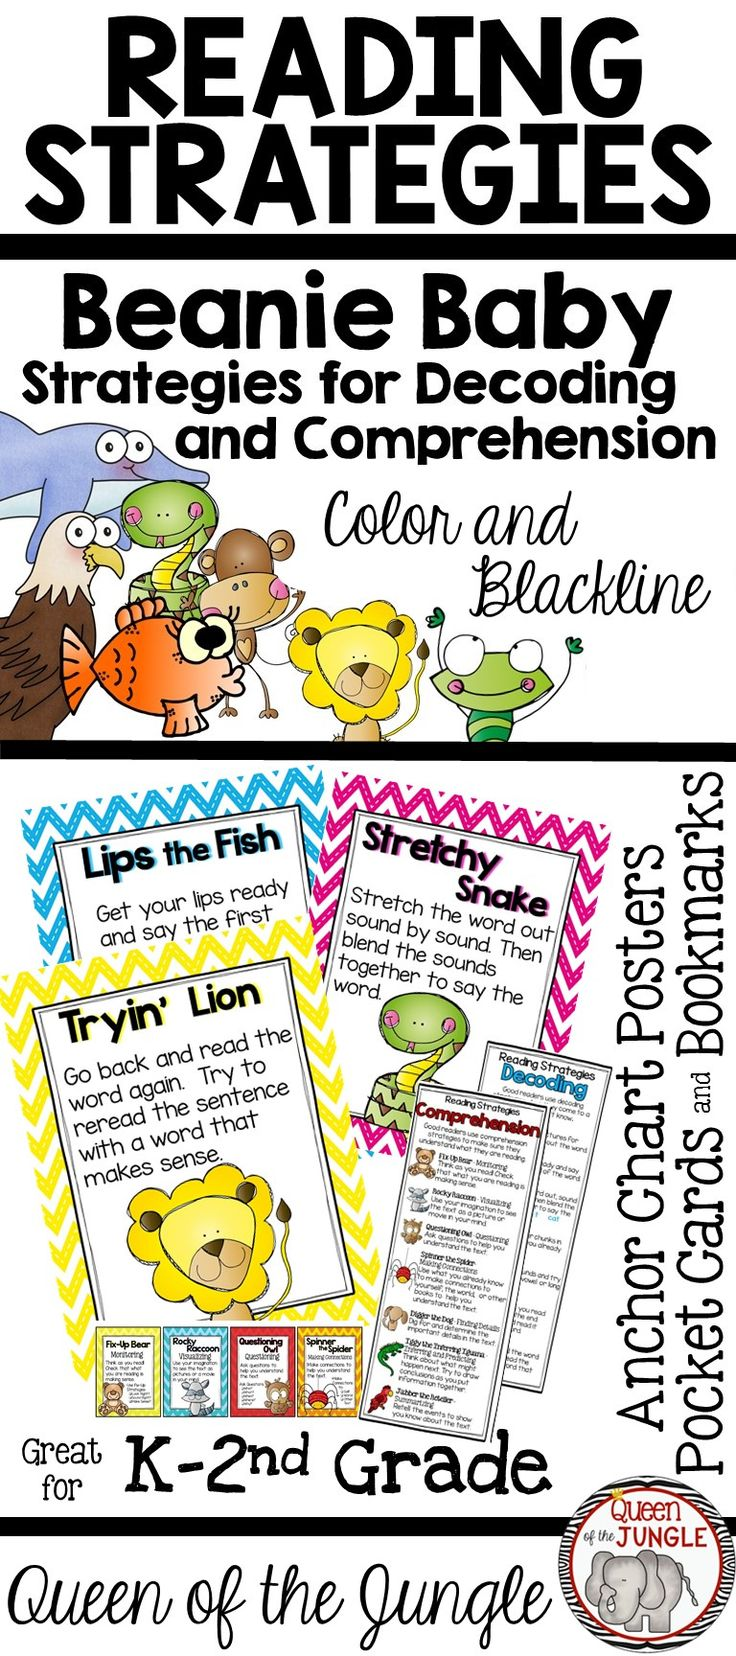 Beanie Baby Reading Strategies for Decoding and Comprehension. Kindergarten - 2nd Grades. Anchor Chart Posters, Bookmarks and Pocket Size Cards.